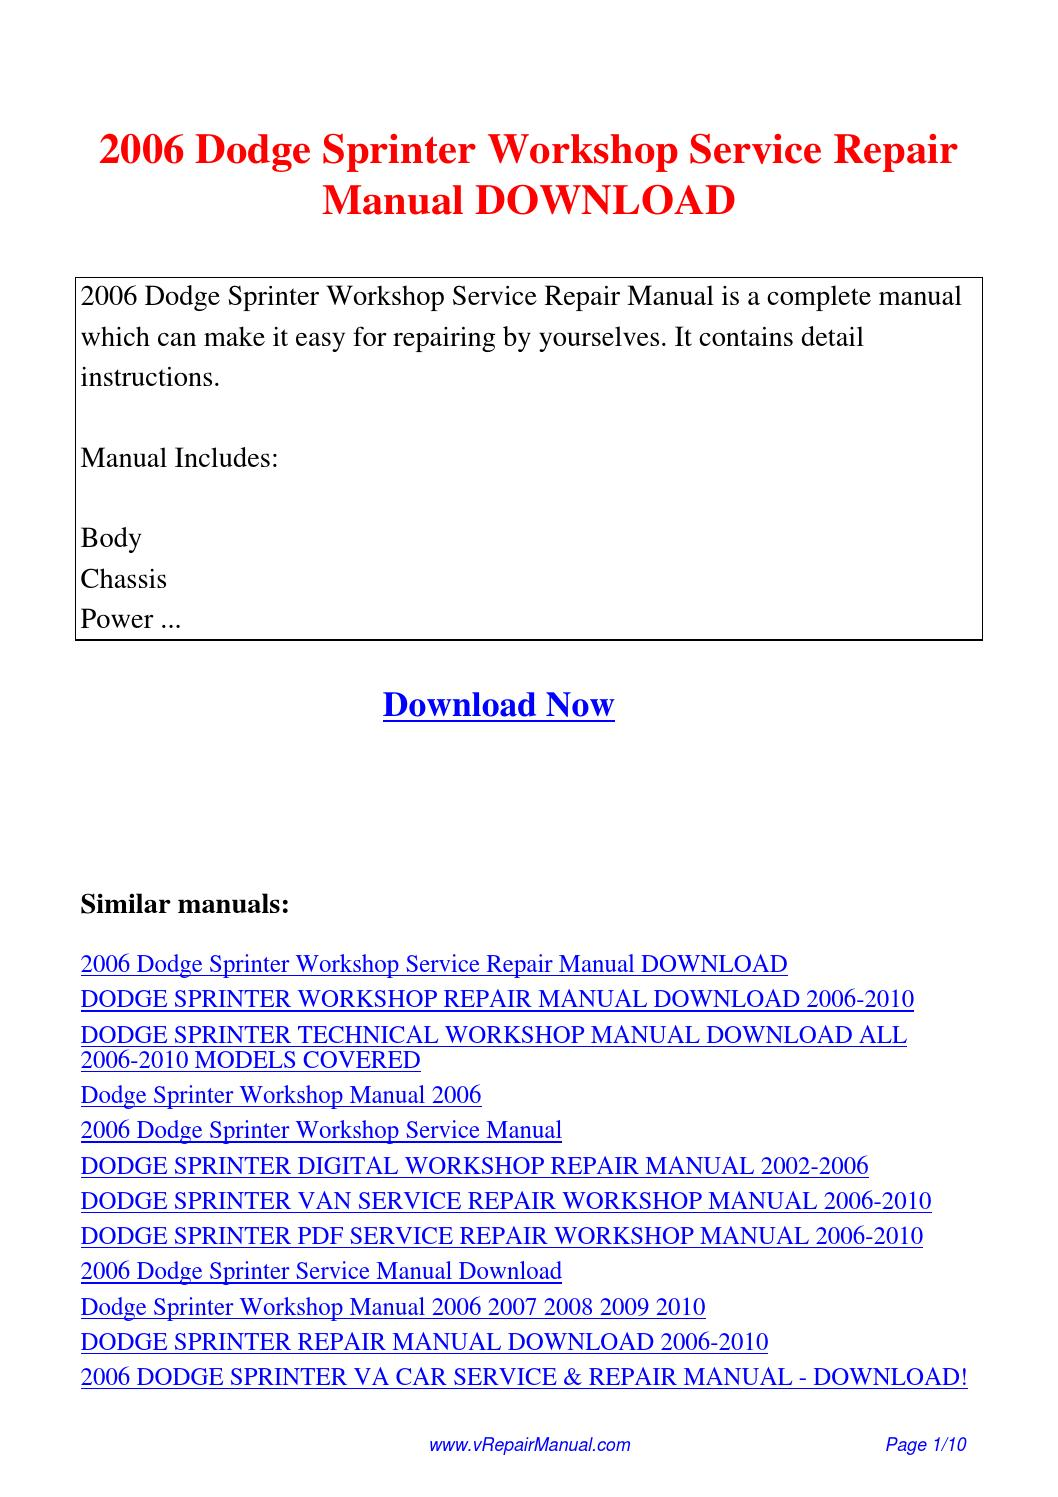 2006 dodge sprinter workshop service repair manual pdf by ting wang rh issuu com 2008 Dodge Sprinter Cargo 2008 Dodge Sprinter Problems